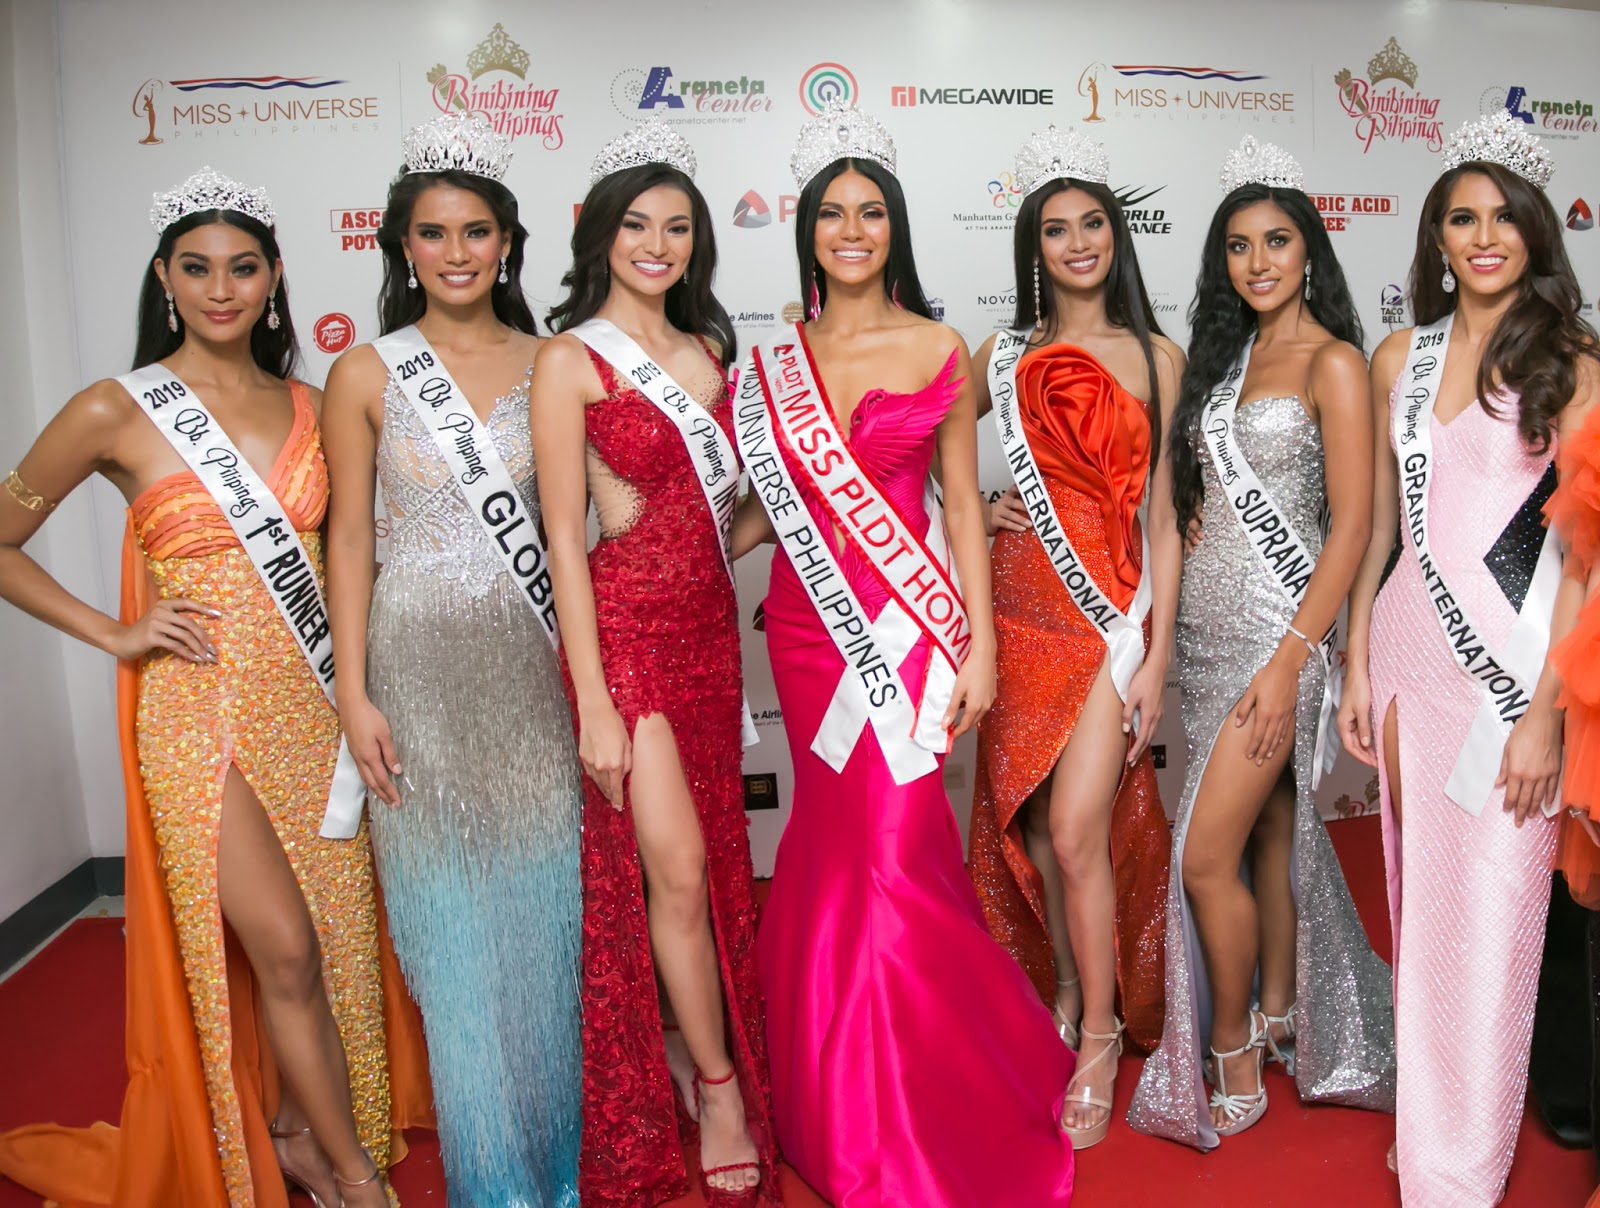 Lemon GreenTea: Miss Universe Philippines 2019 Gazini Ganados